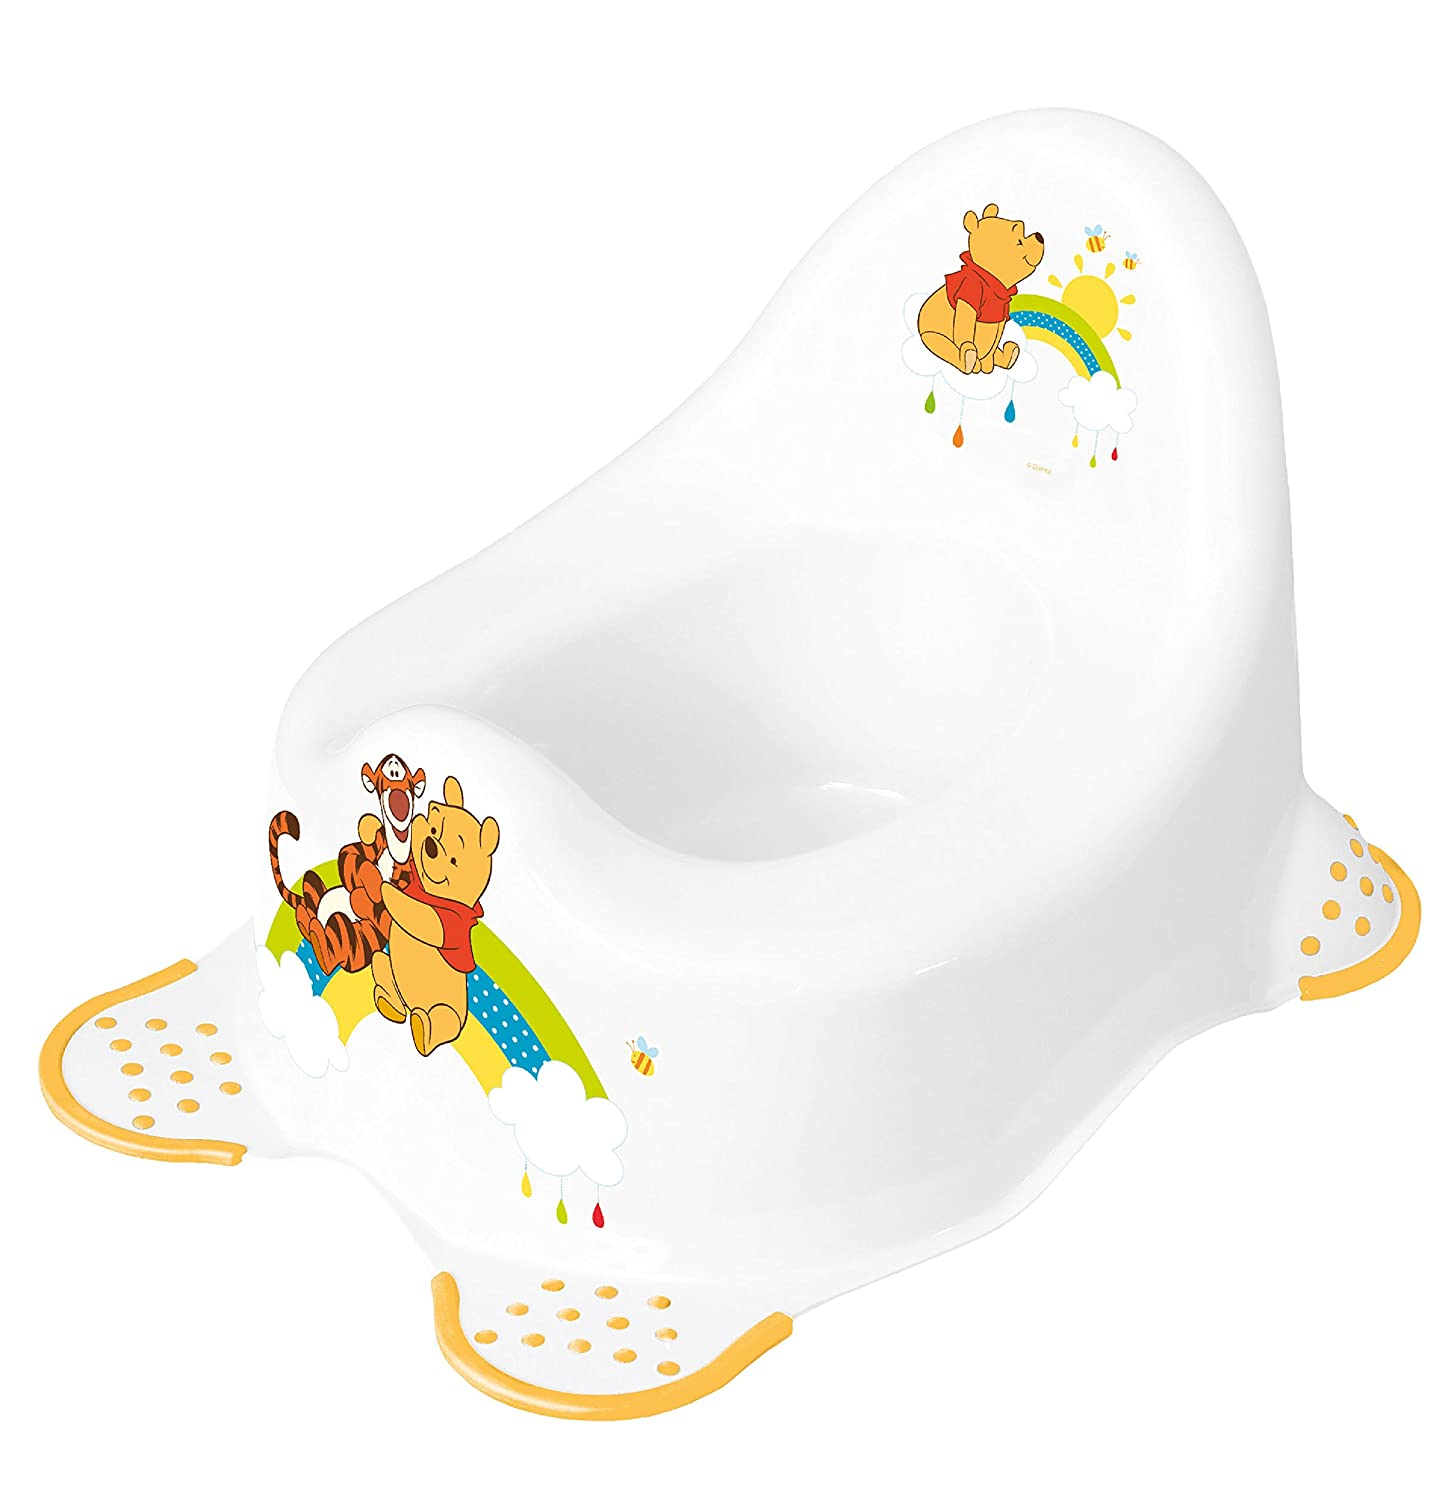 Disney Baby Winnie The Pooh Steady Potty with Non Slip Feet  sc 1 st  Amazon UK & Disney Baby Winnie the Pooh Step Stool with Non Slip Feet: Amazon ... islam-shia.org